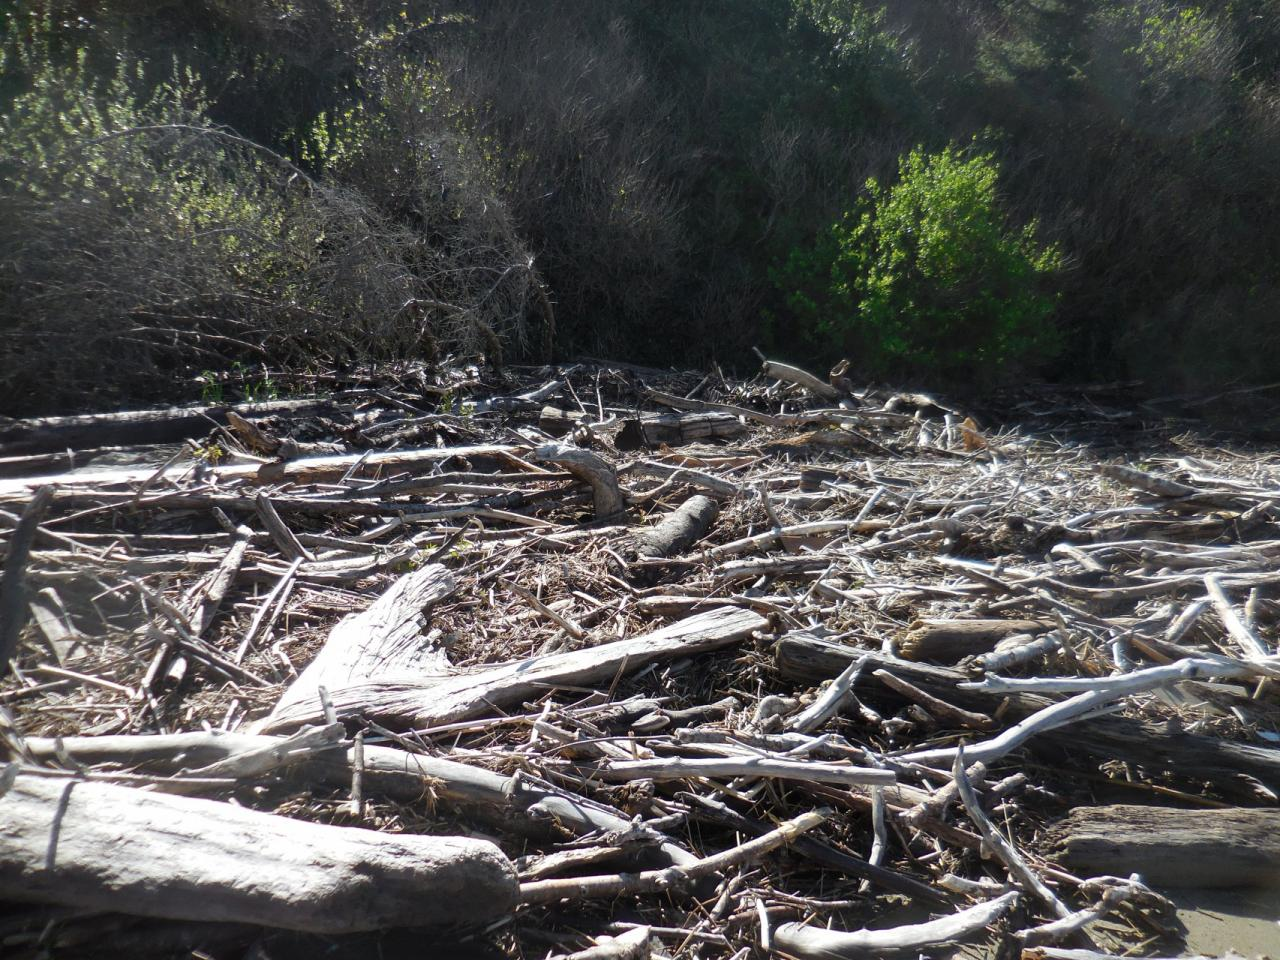 This stretch of wood debris ran from about a 1/4 mile from the edge of the bay around to the S.W.